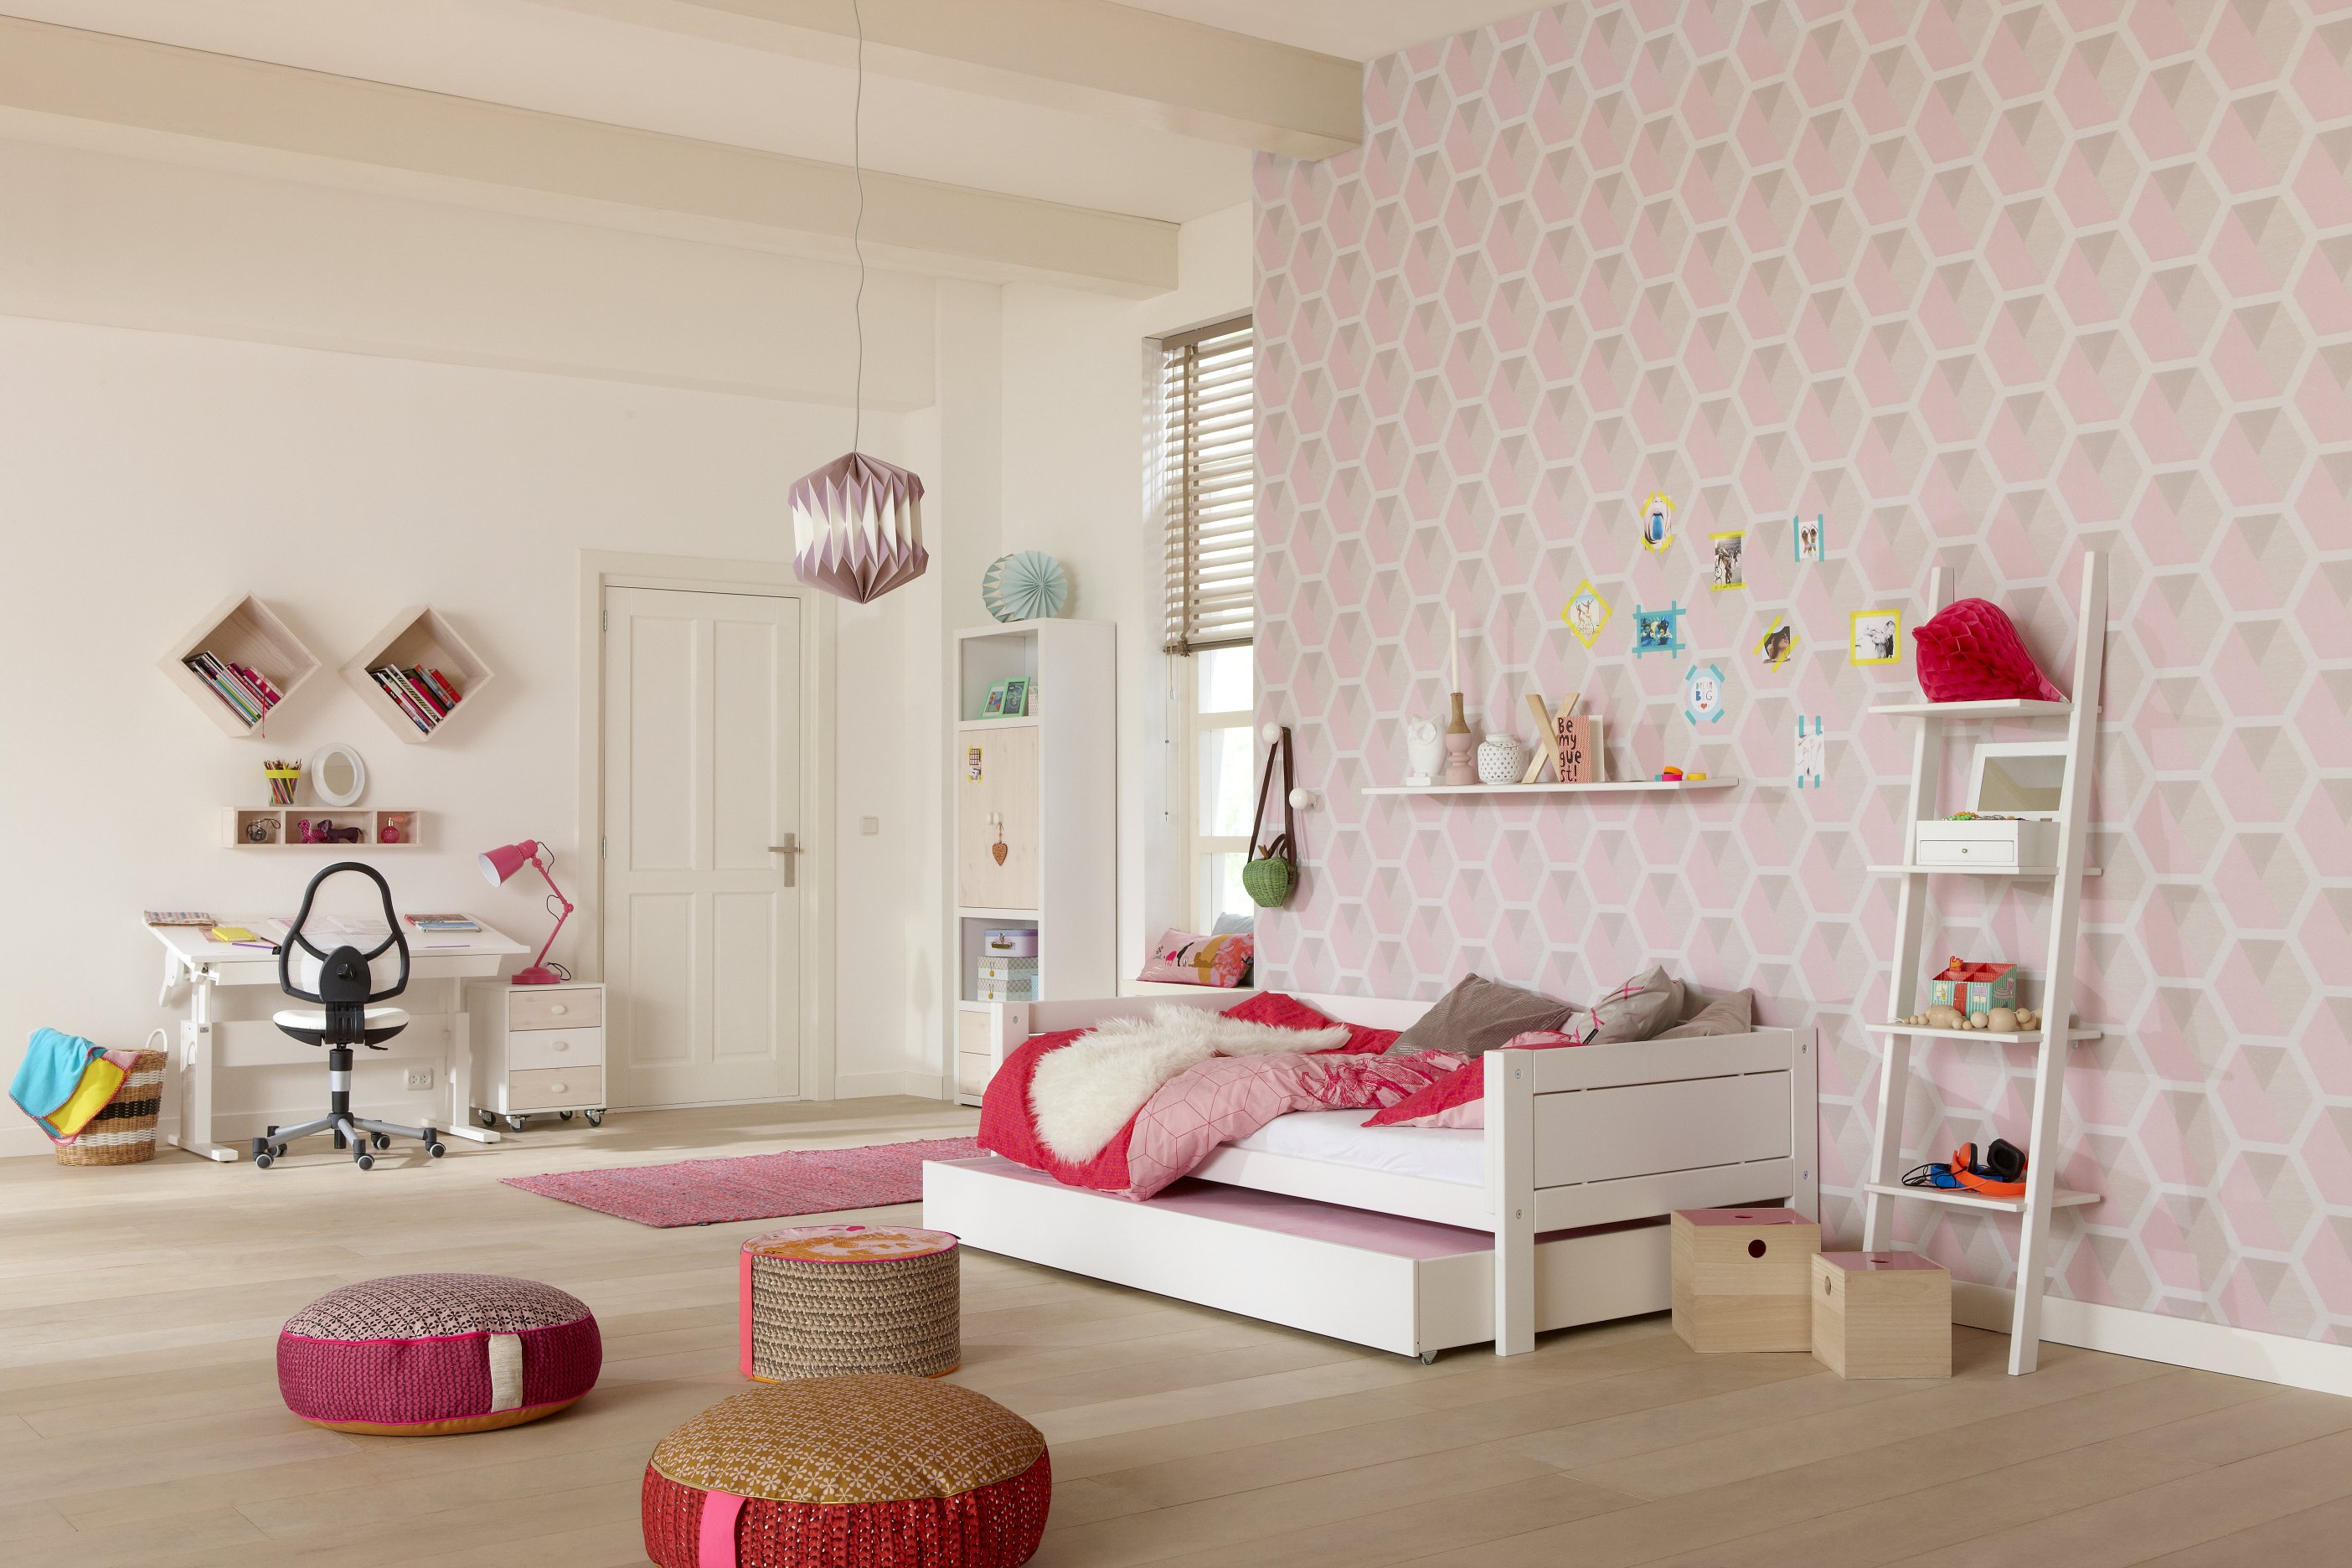 A Room Of One 39 S Own Nest Designs